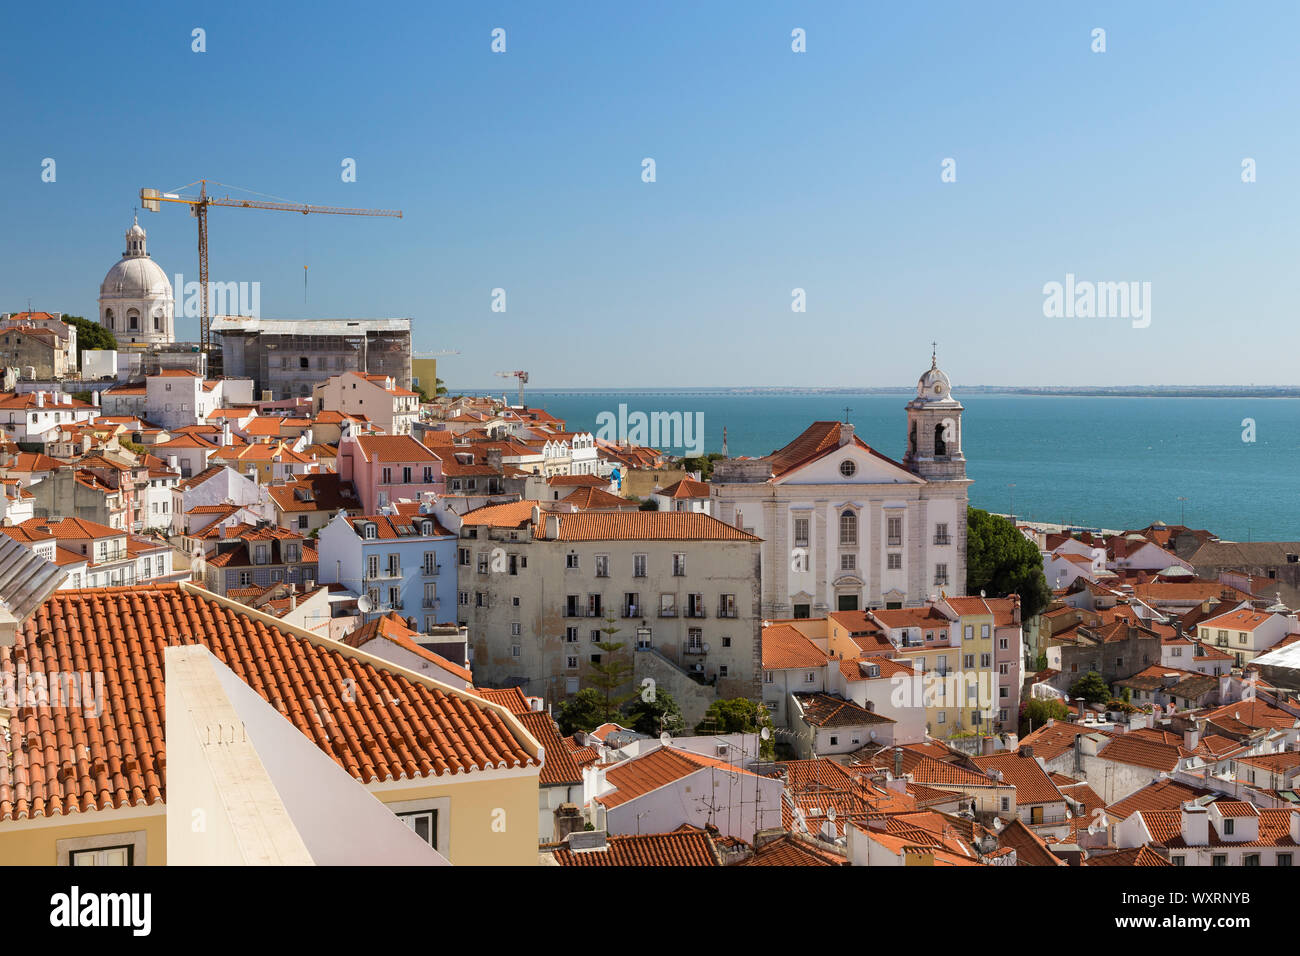 View of Tagus River and old buildings at the historical Alfama district in downtown Lisbon, Portugal. Viewed from Miradouro de Santa Luzia  viewpoint. Stock Photo